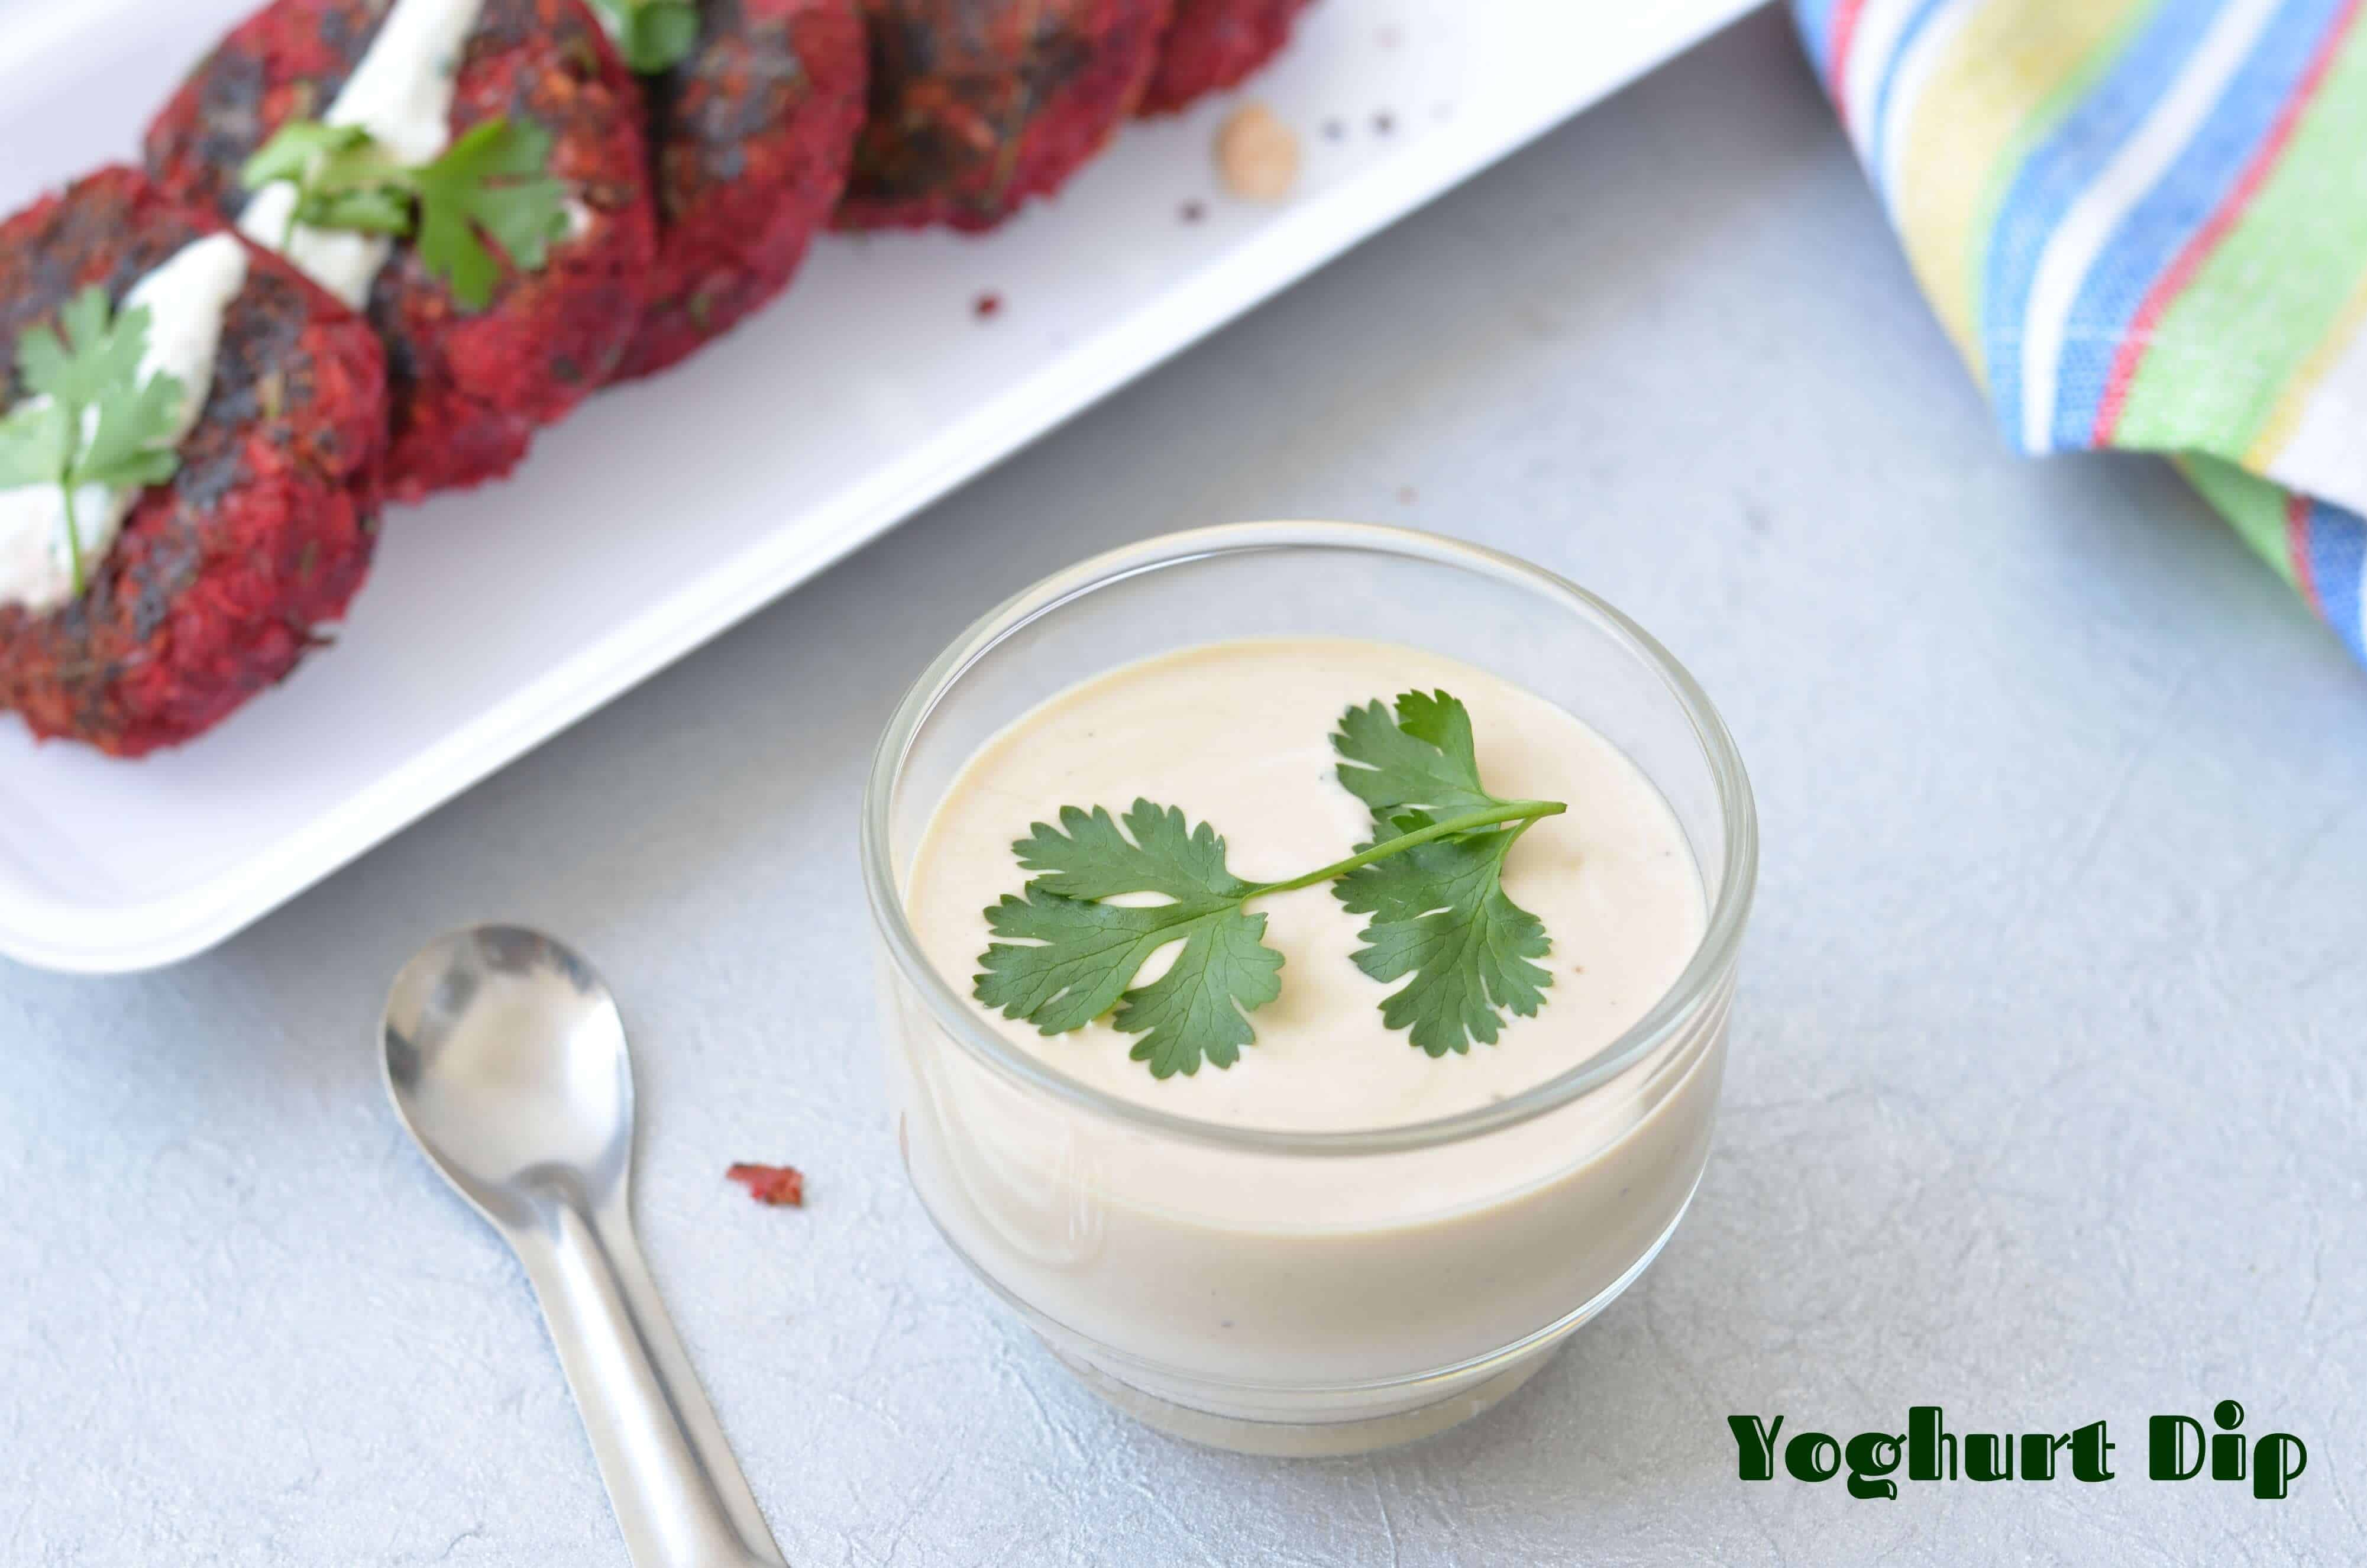 Curd dip or yoghurt dip is very quick and easy dip to prepare, just mixing curd with soya sauce and garlic, a delicious dip is ready in no time.